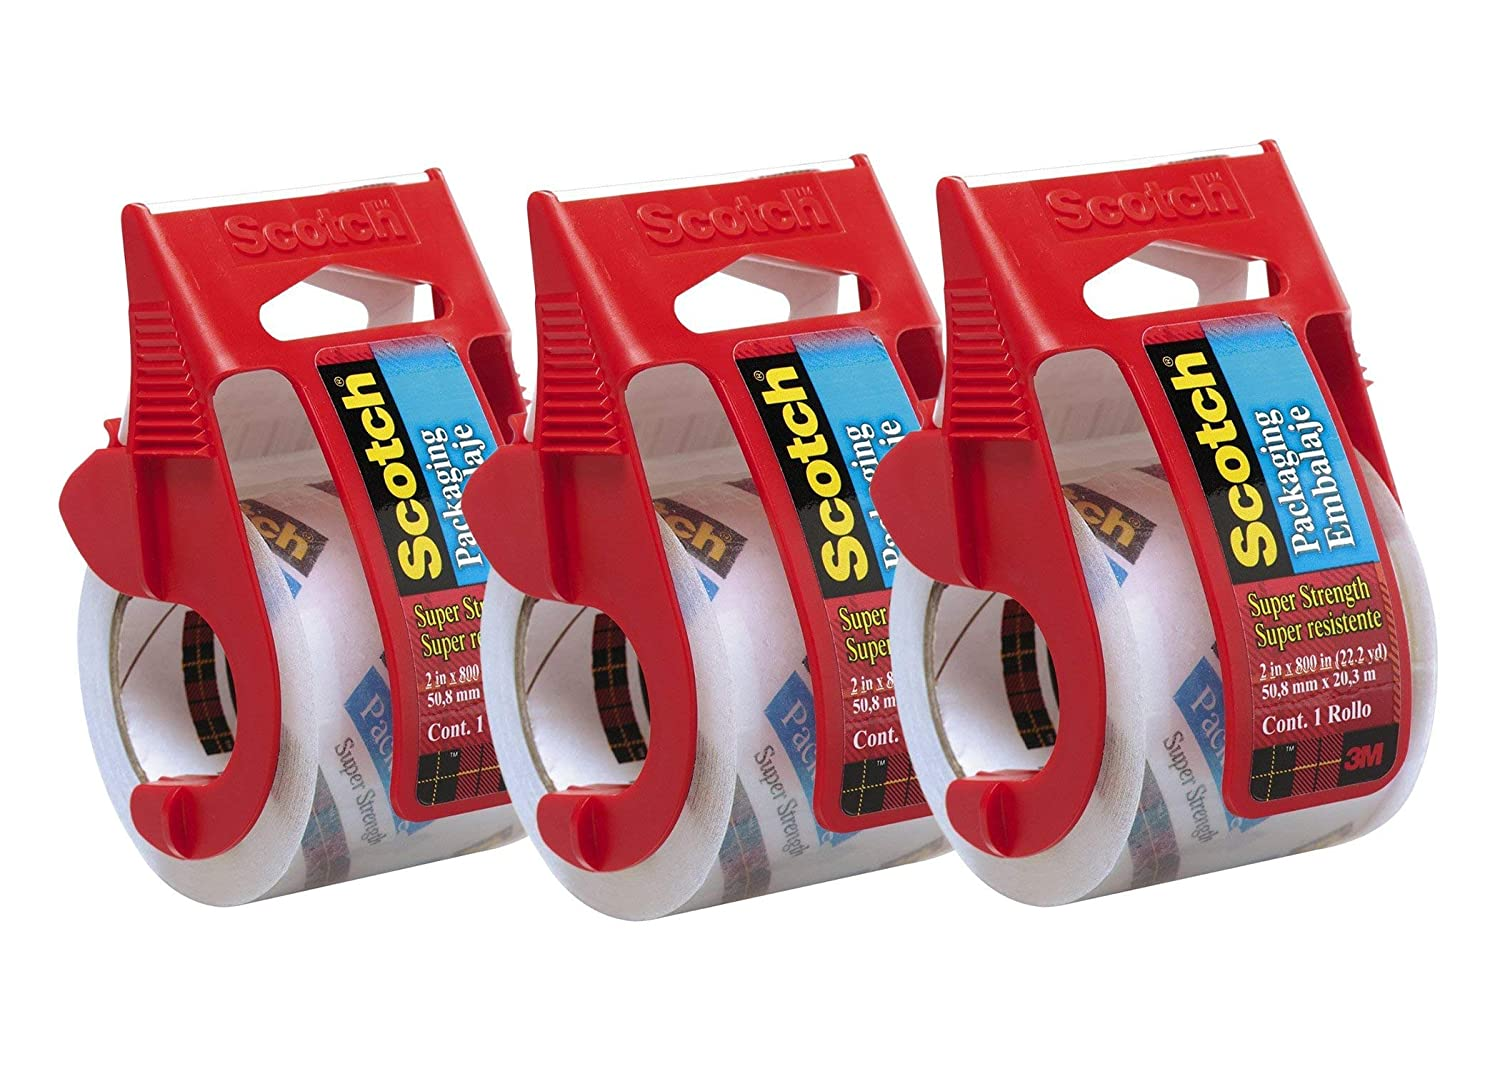 2 x 800 Clear Scotch Heavy Duty Shipping Packaging Tape